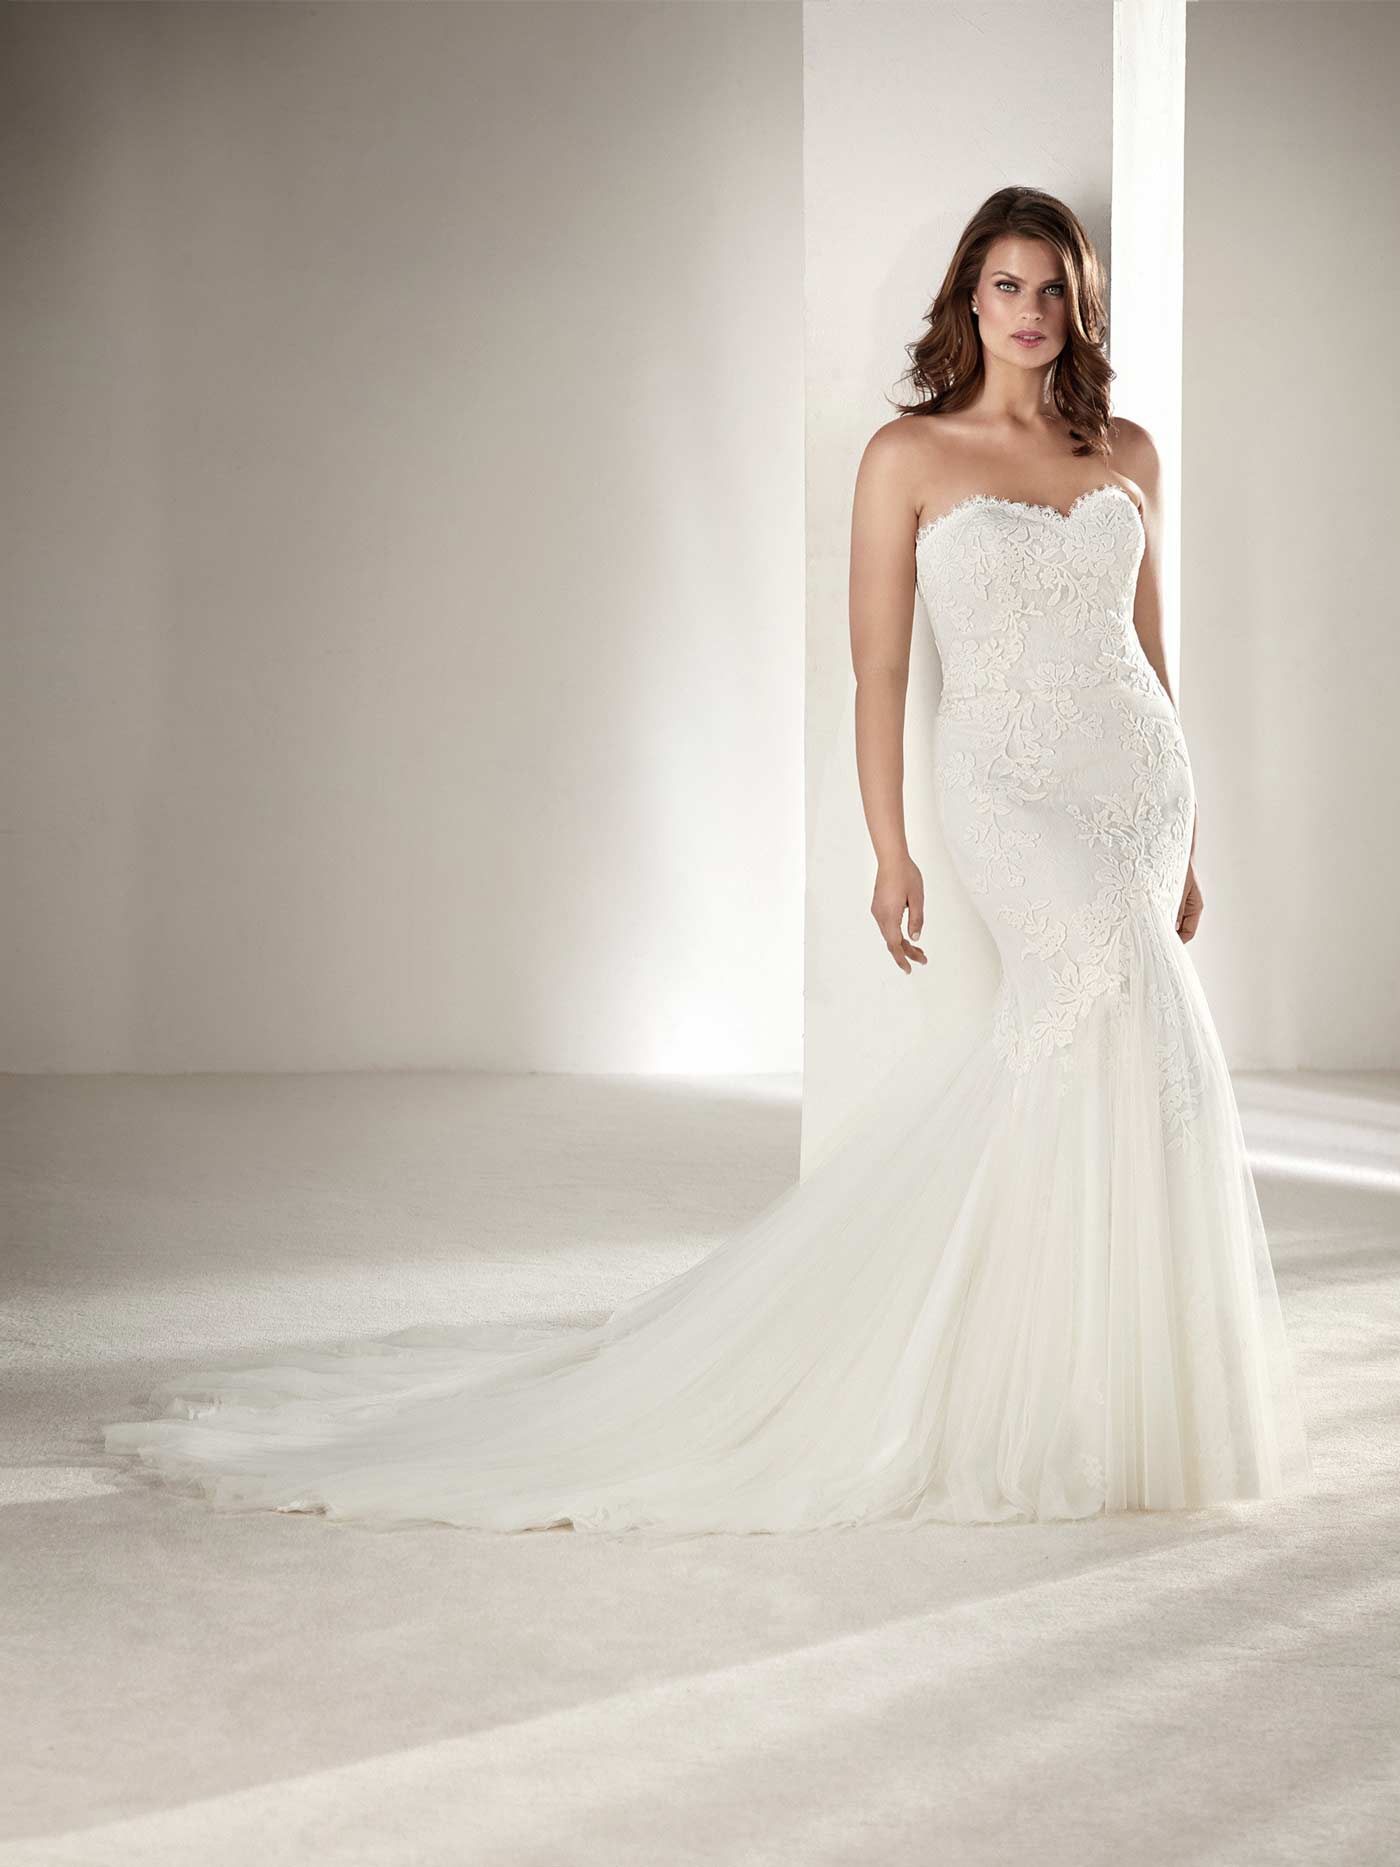 Plus size wedding dresses | Curve Collection